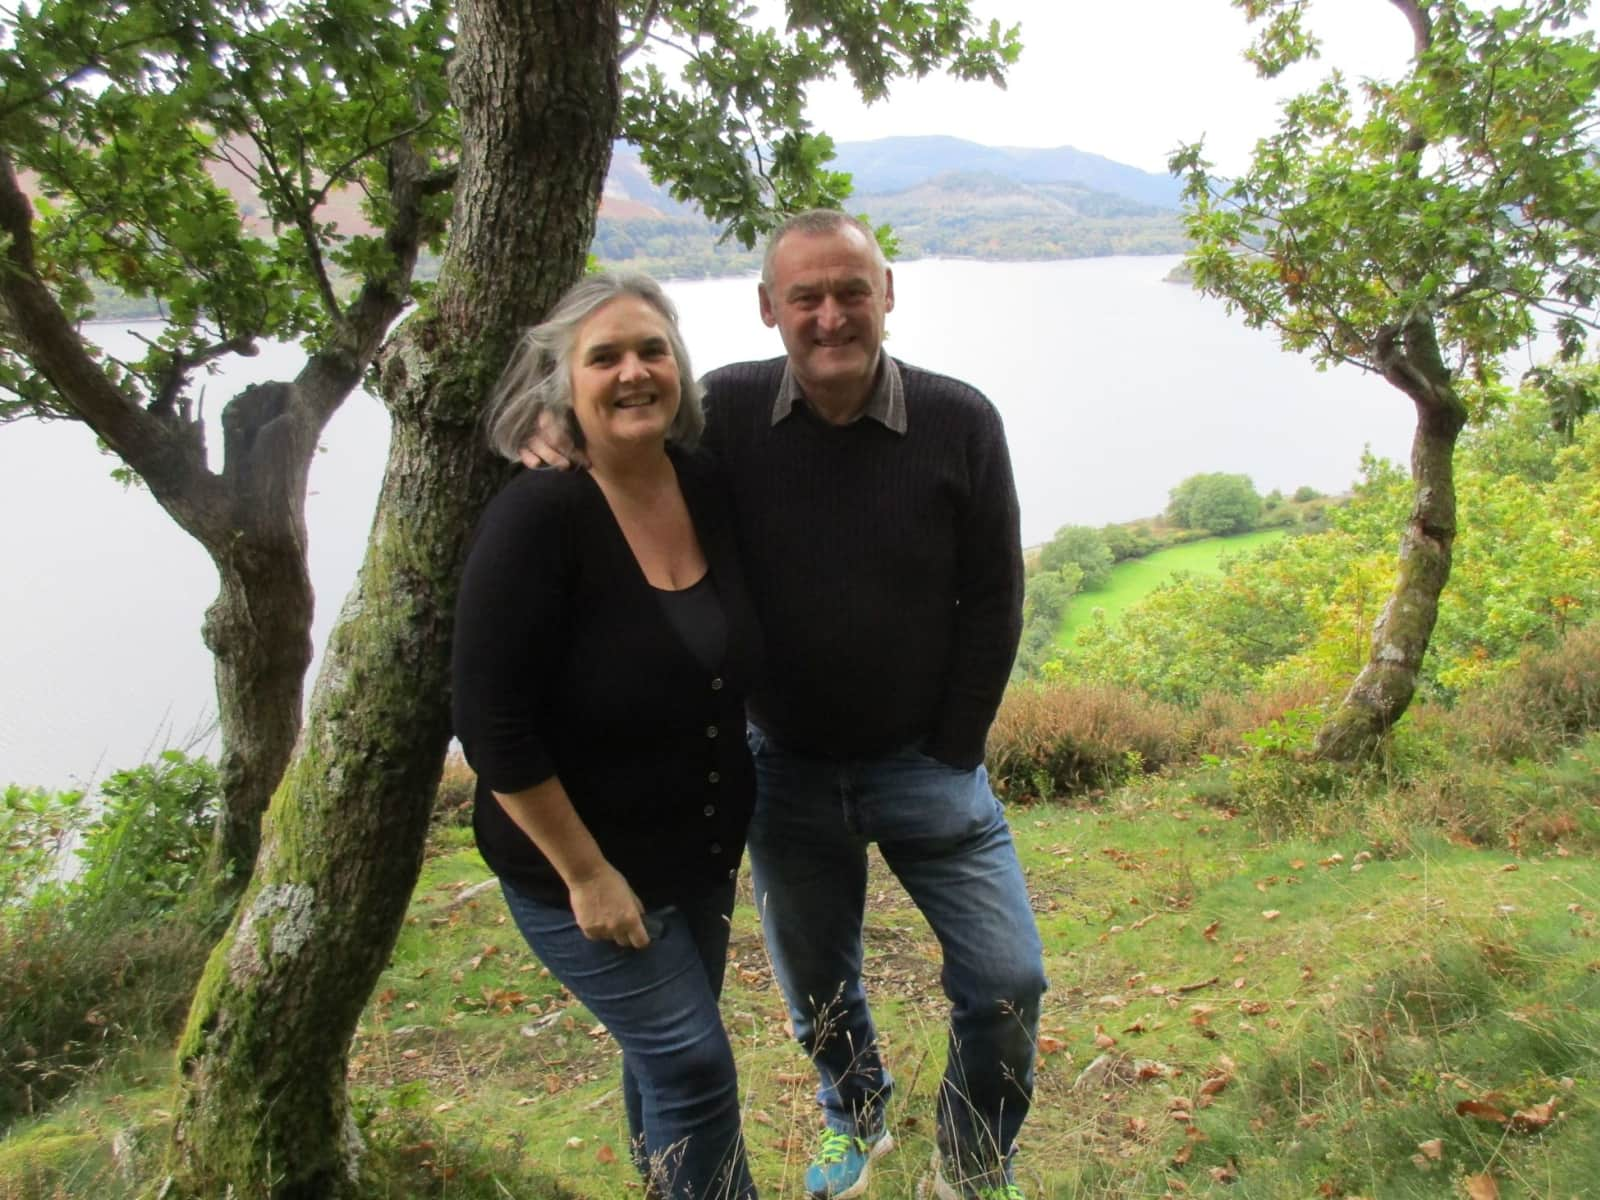 Janet & Eric from Wigan, United Kingdom